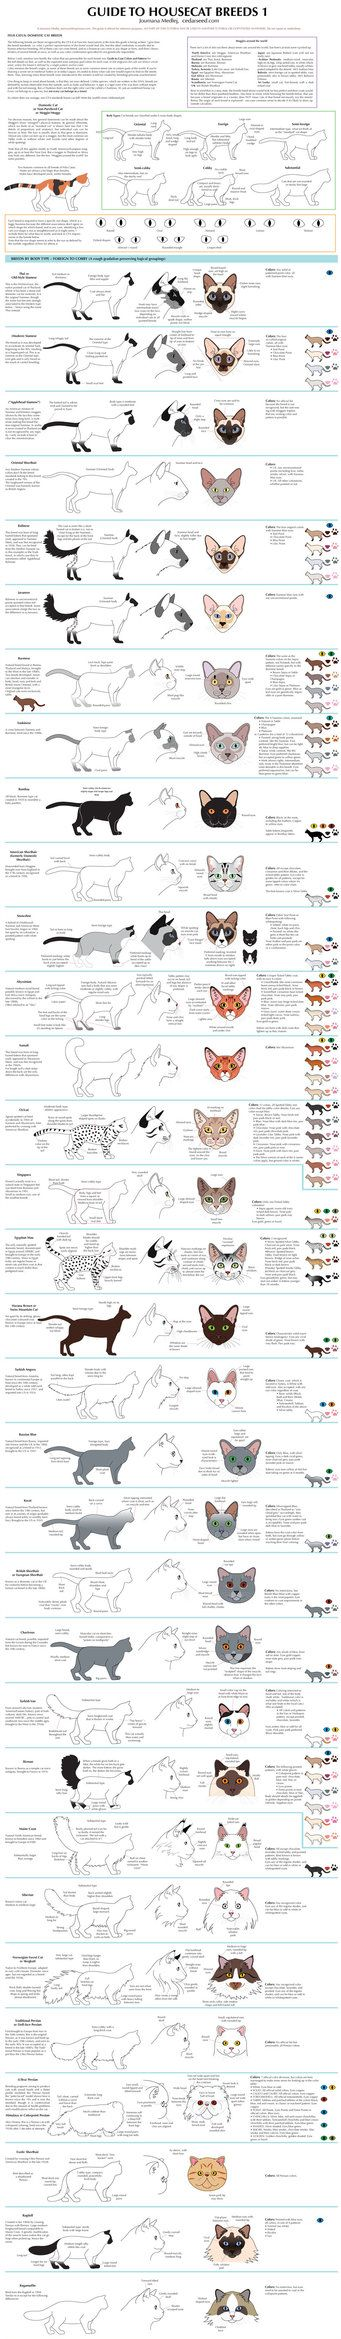 All the cat breeds wouldn't fit on one document so I had to divide this one. The last 12 breeds, those with coat/tail/ear mutations, are in part 2 linked below. To view both parts of this chart tog...